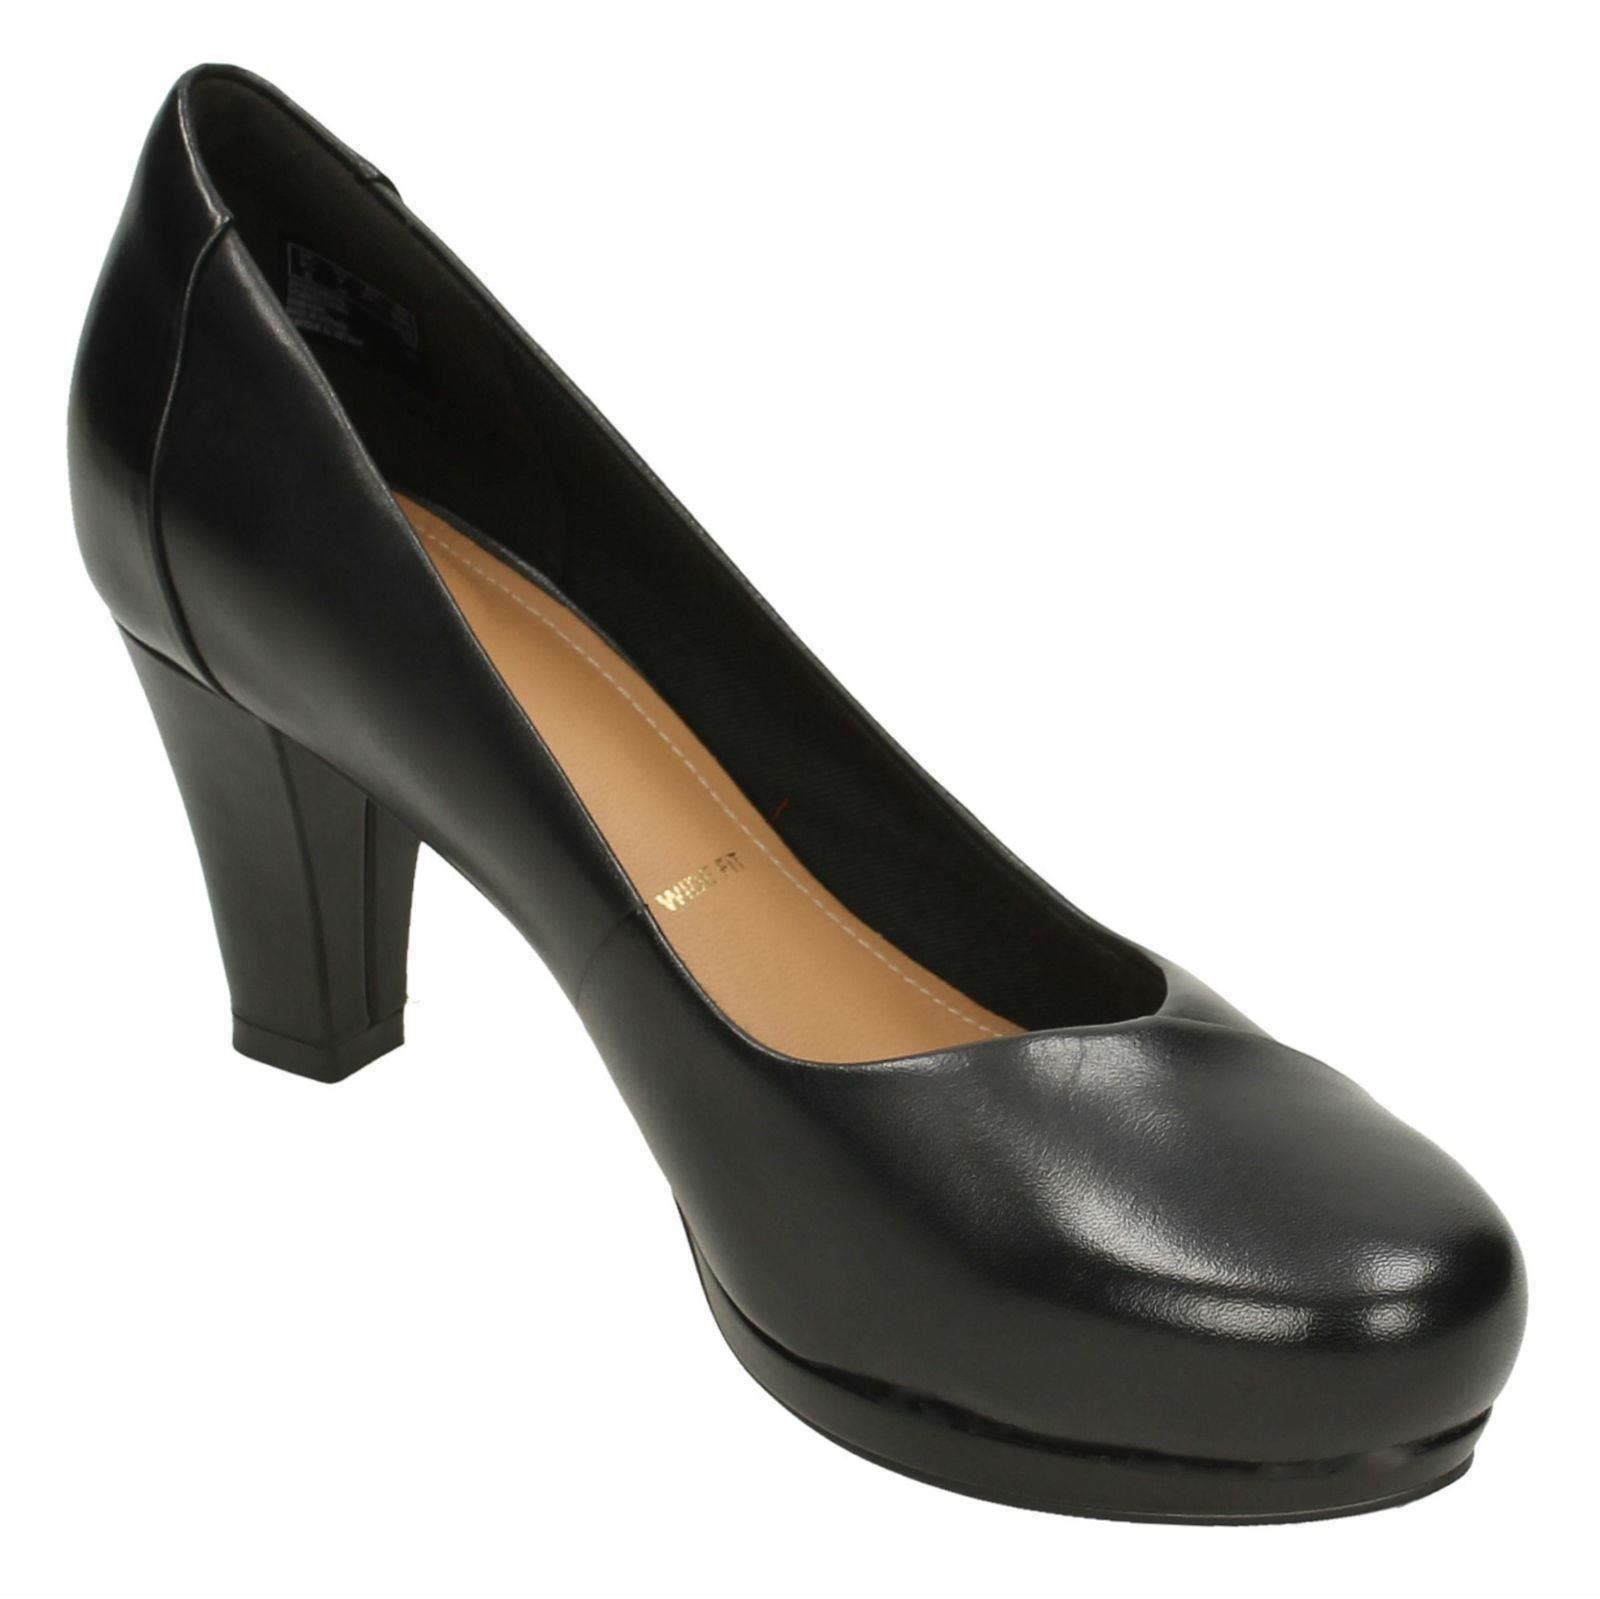 ddd047949e21 Ladies Clarks Slip on Court Shoes Chorus Carol UK 4.5 Black E. About this  product. Picture 1 of 10  Picture 2 of 10  Picture 3 of 10 ...